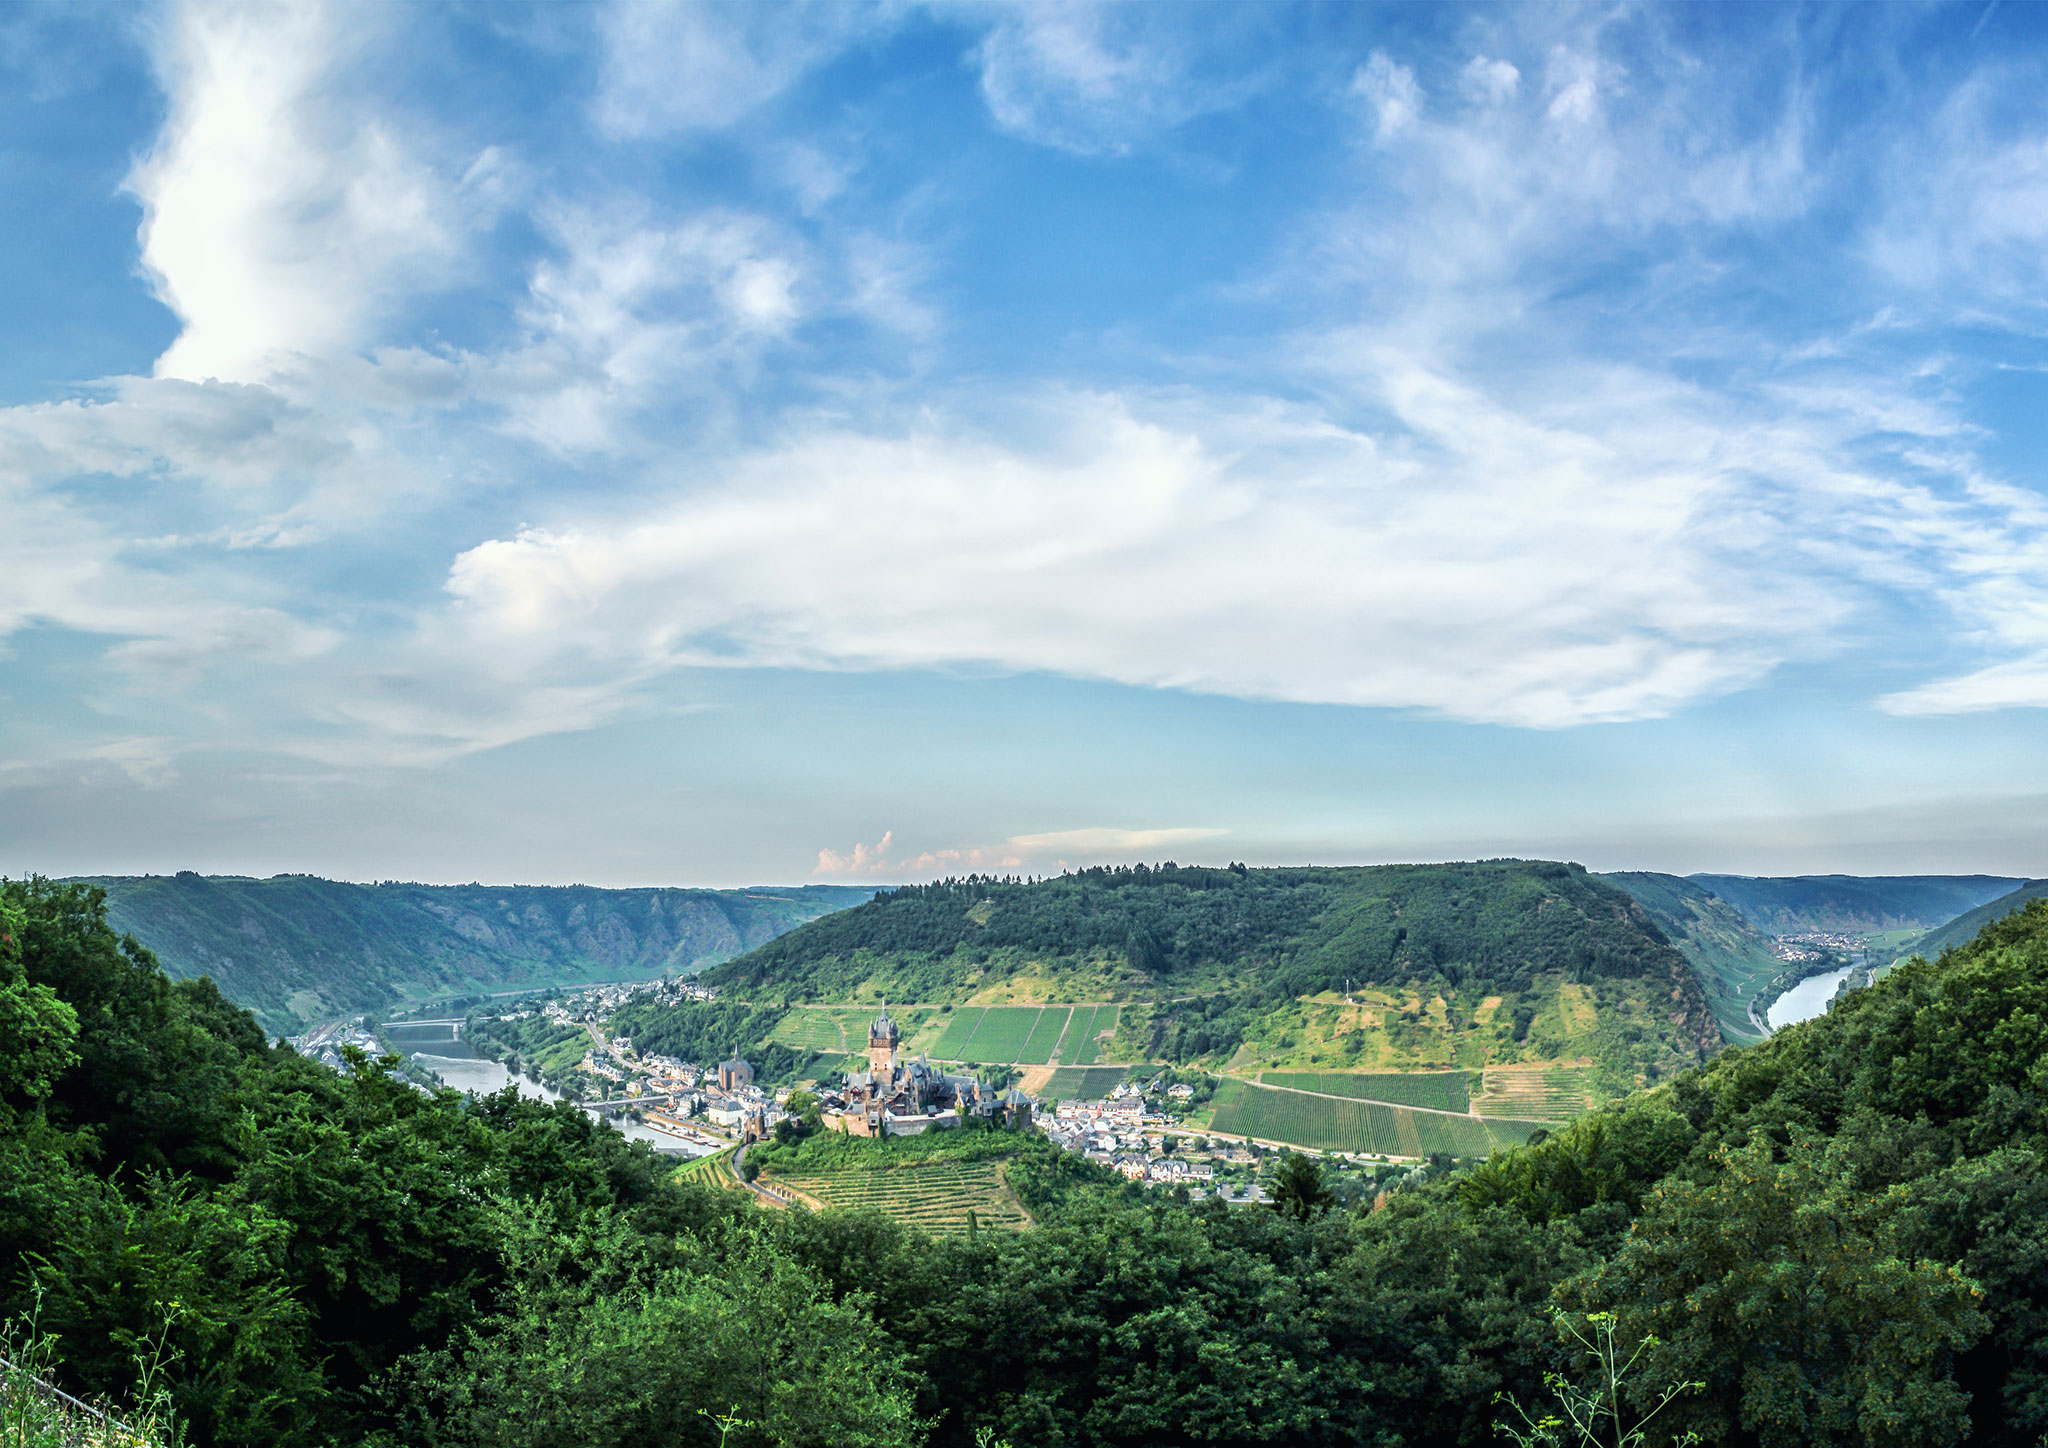 View down to Imperial Castle, Germany